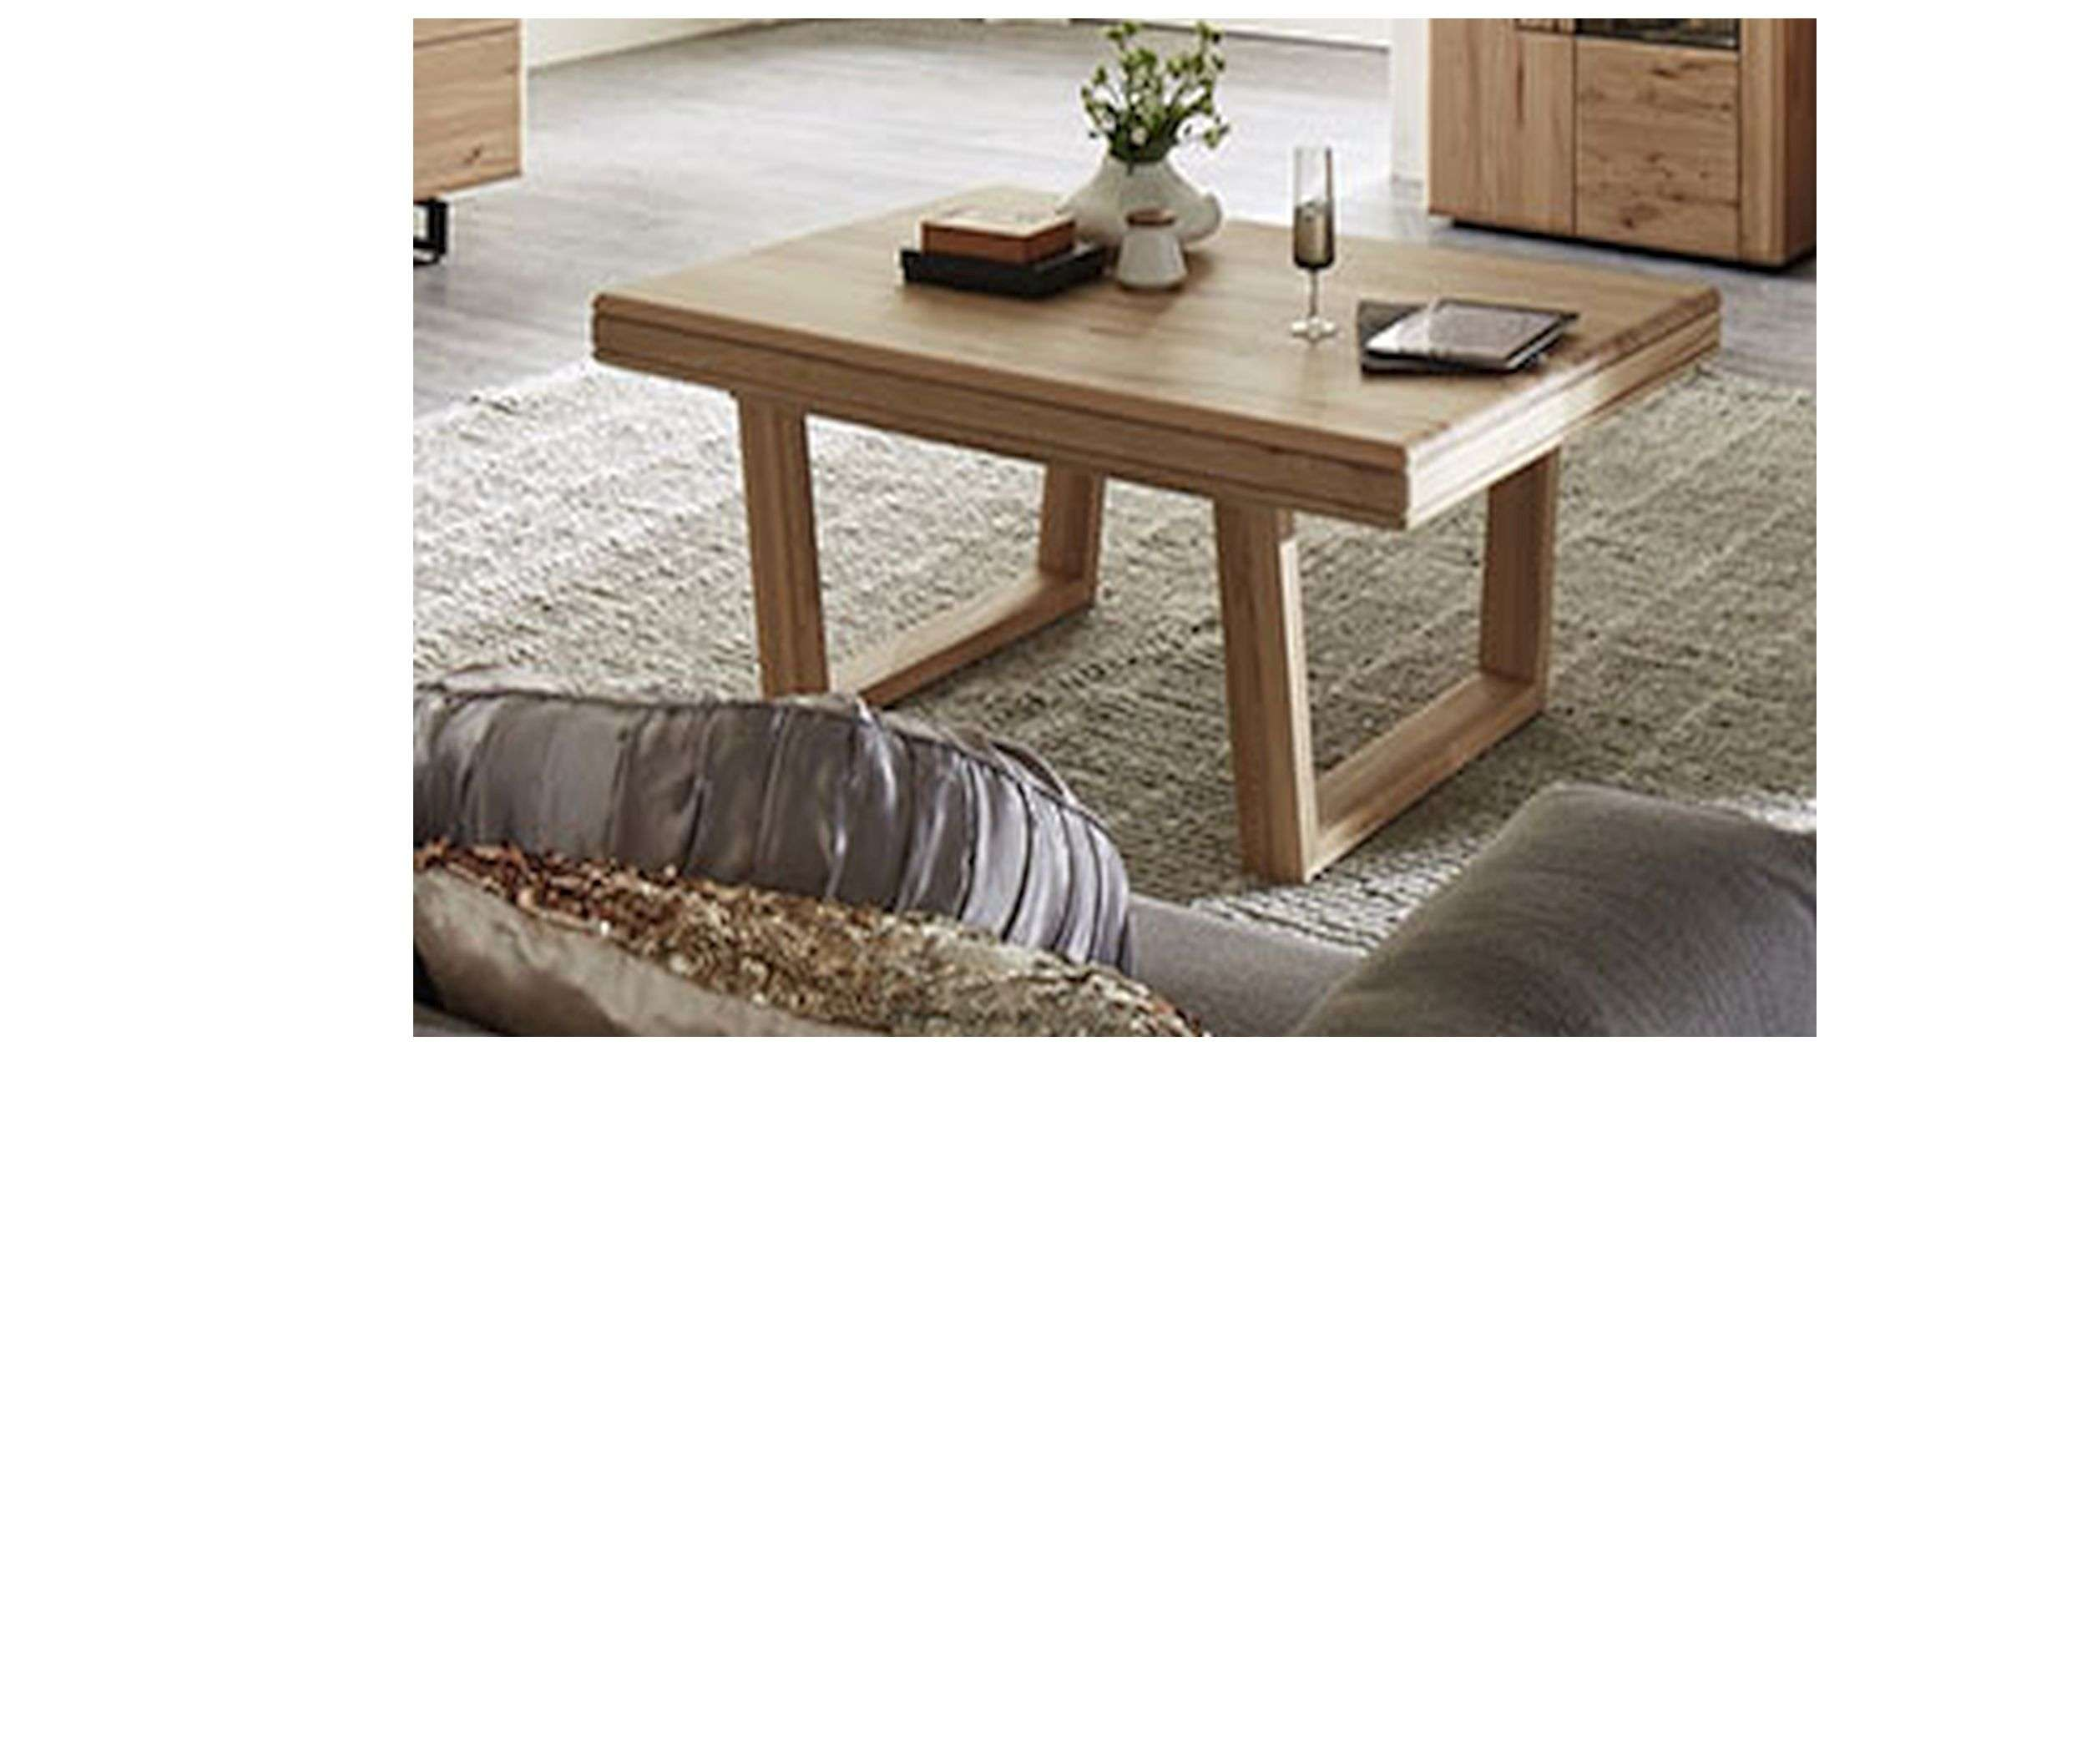 Charmant awesome and beautiful couchtisch kernbuche ideen for Couchtisch 60x60 buche